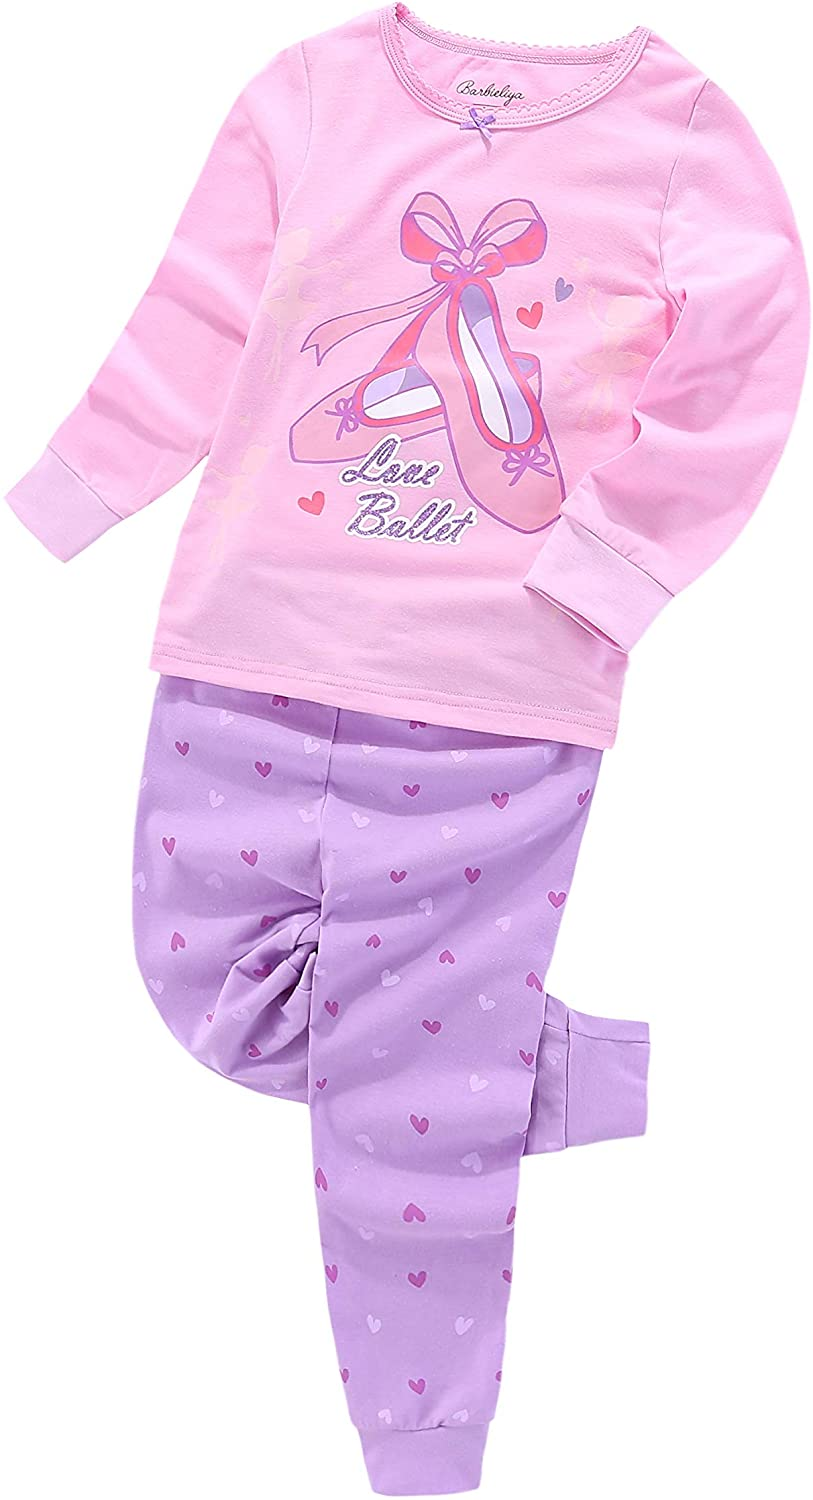 Girls Pajamas 2 Pcs Set Soft Cotton Ballet Slippers Glow in The Dark Sizes 3T - 9T